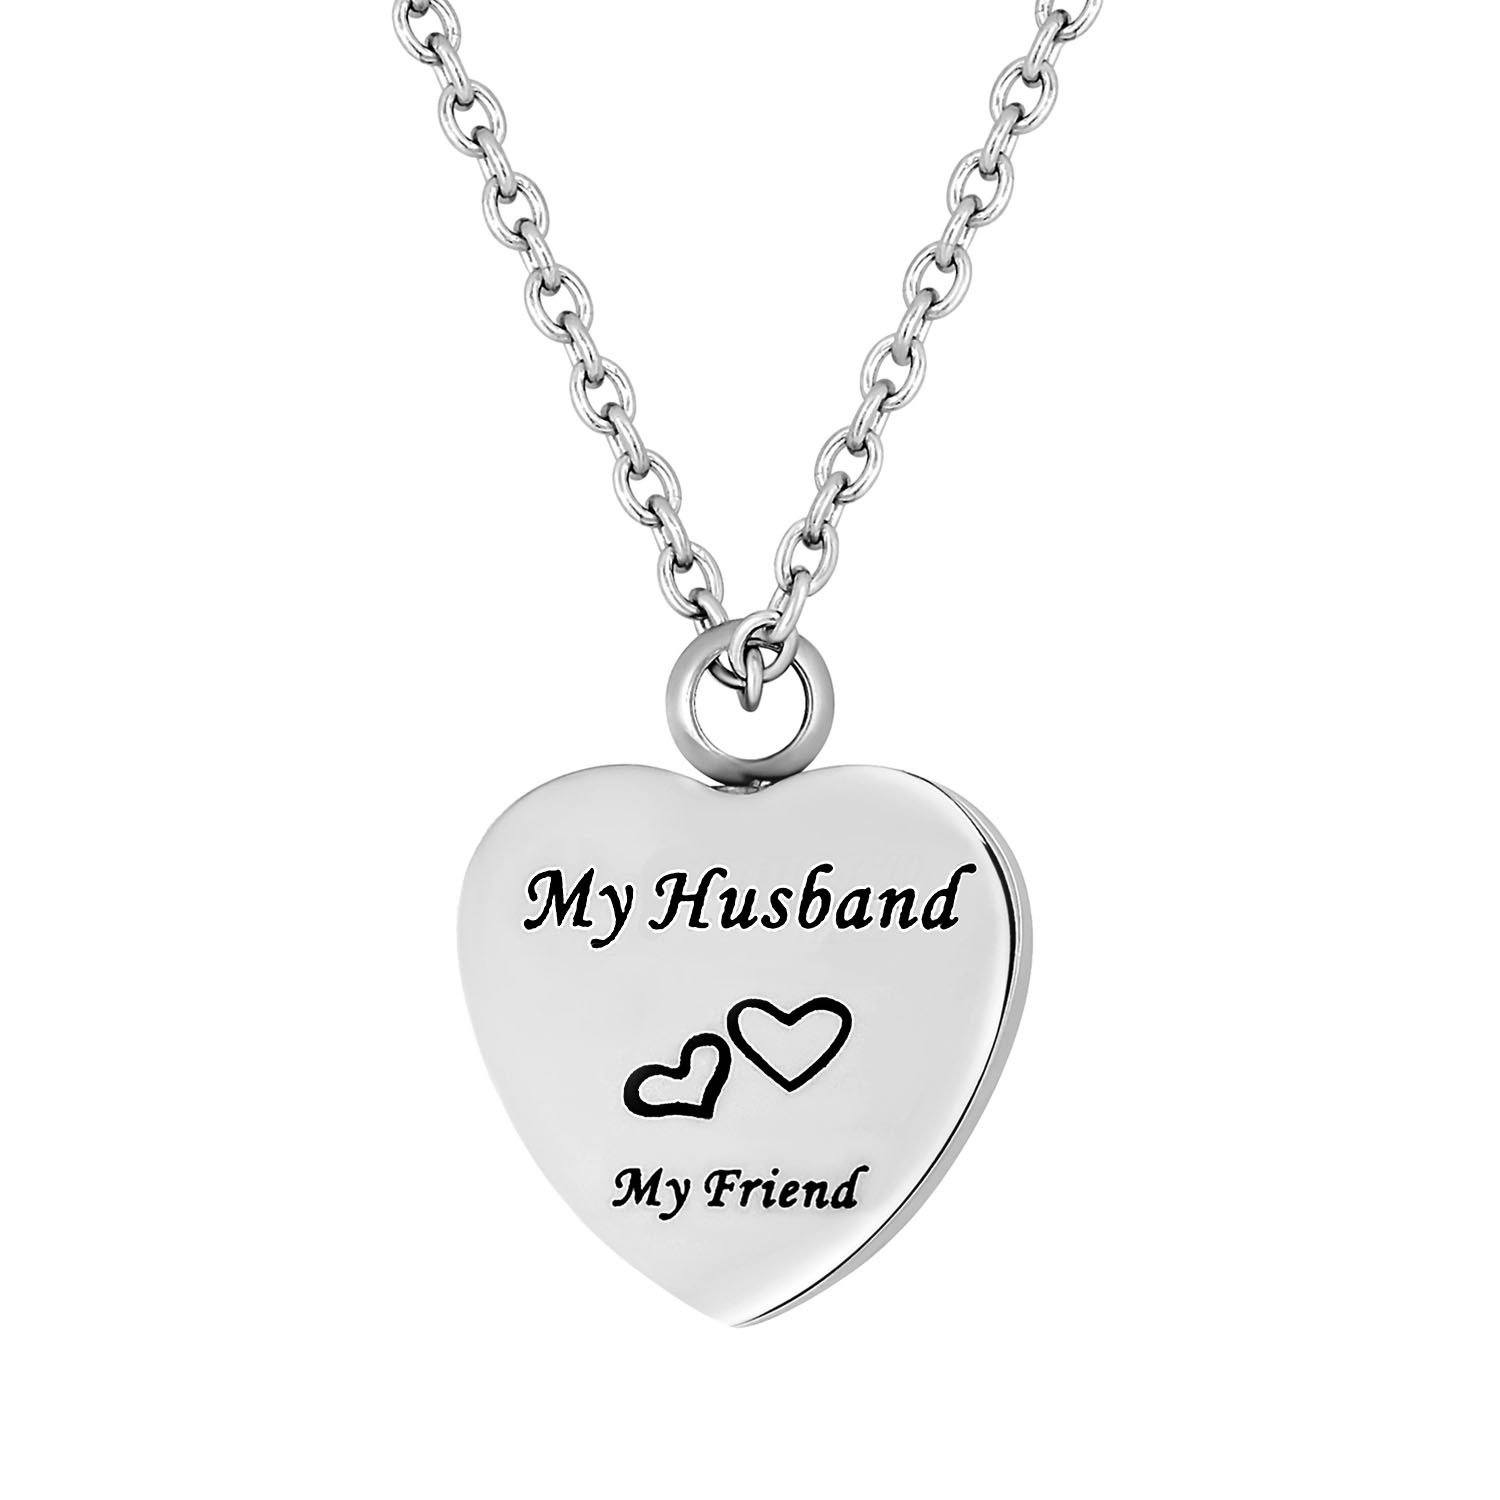 item double shiny love letter from gifts in and charm fashion necklace heart wife necklaces pendant mom fanmily sister husband jewelry you super lover